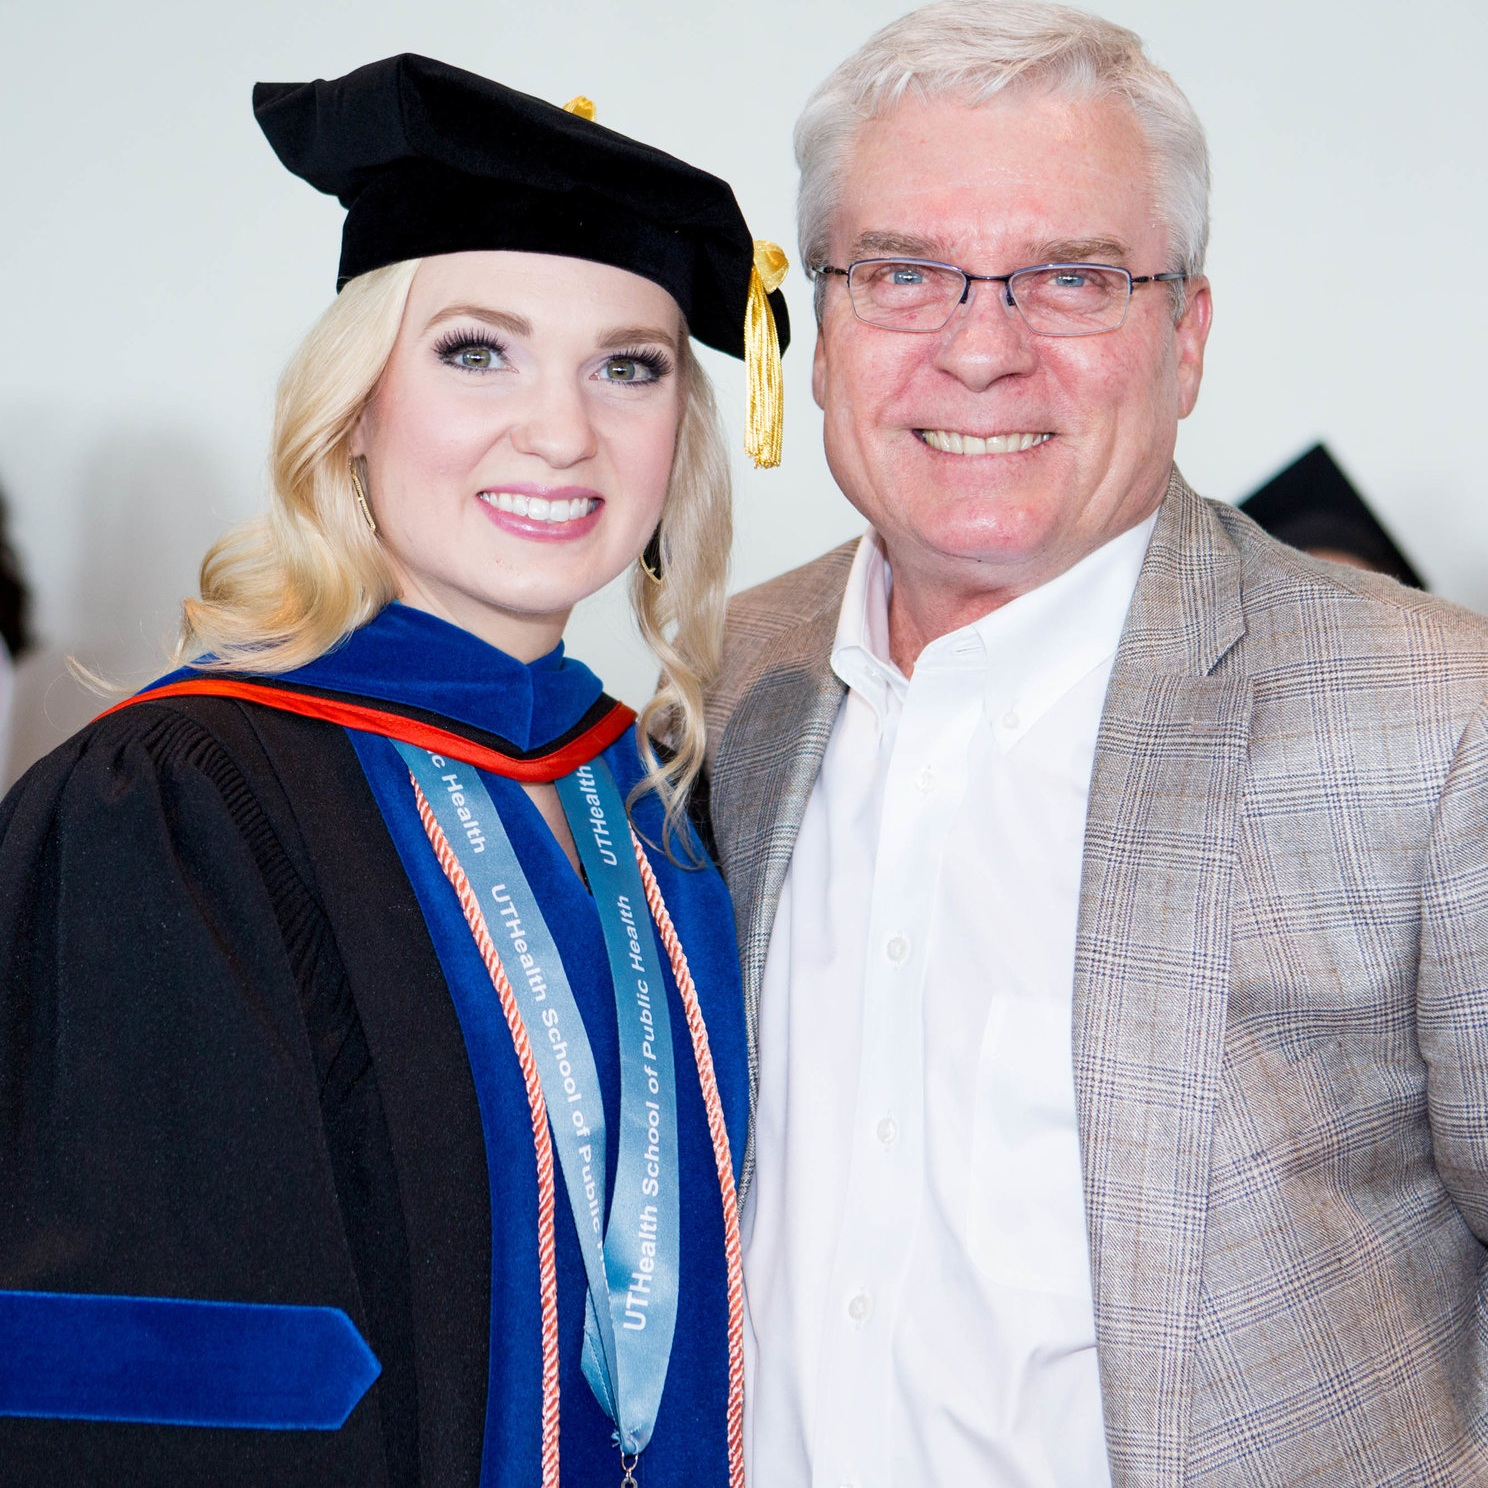 Hadley with her father, Dennis Smith, during her college commencement this past May. (Photo by Savannah Stevens Jarrett)